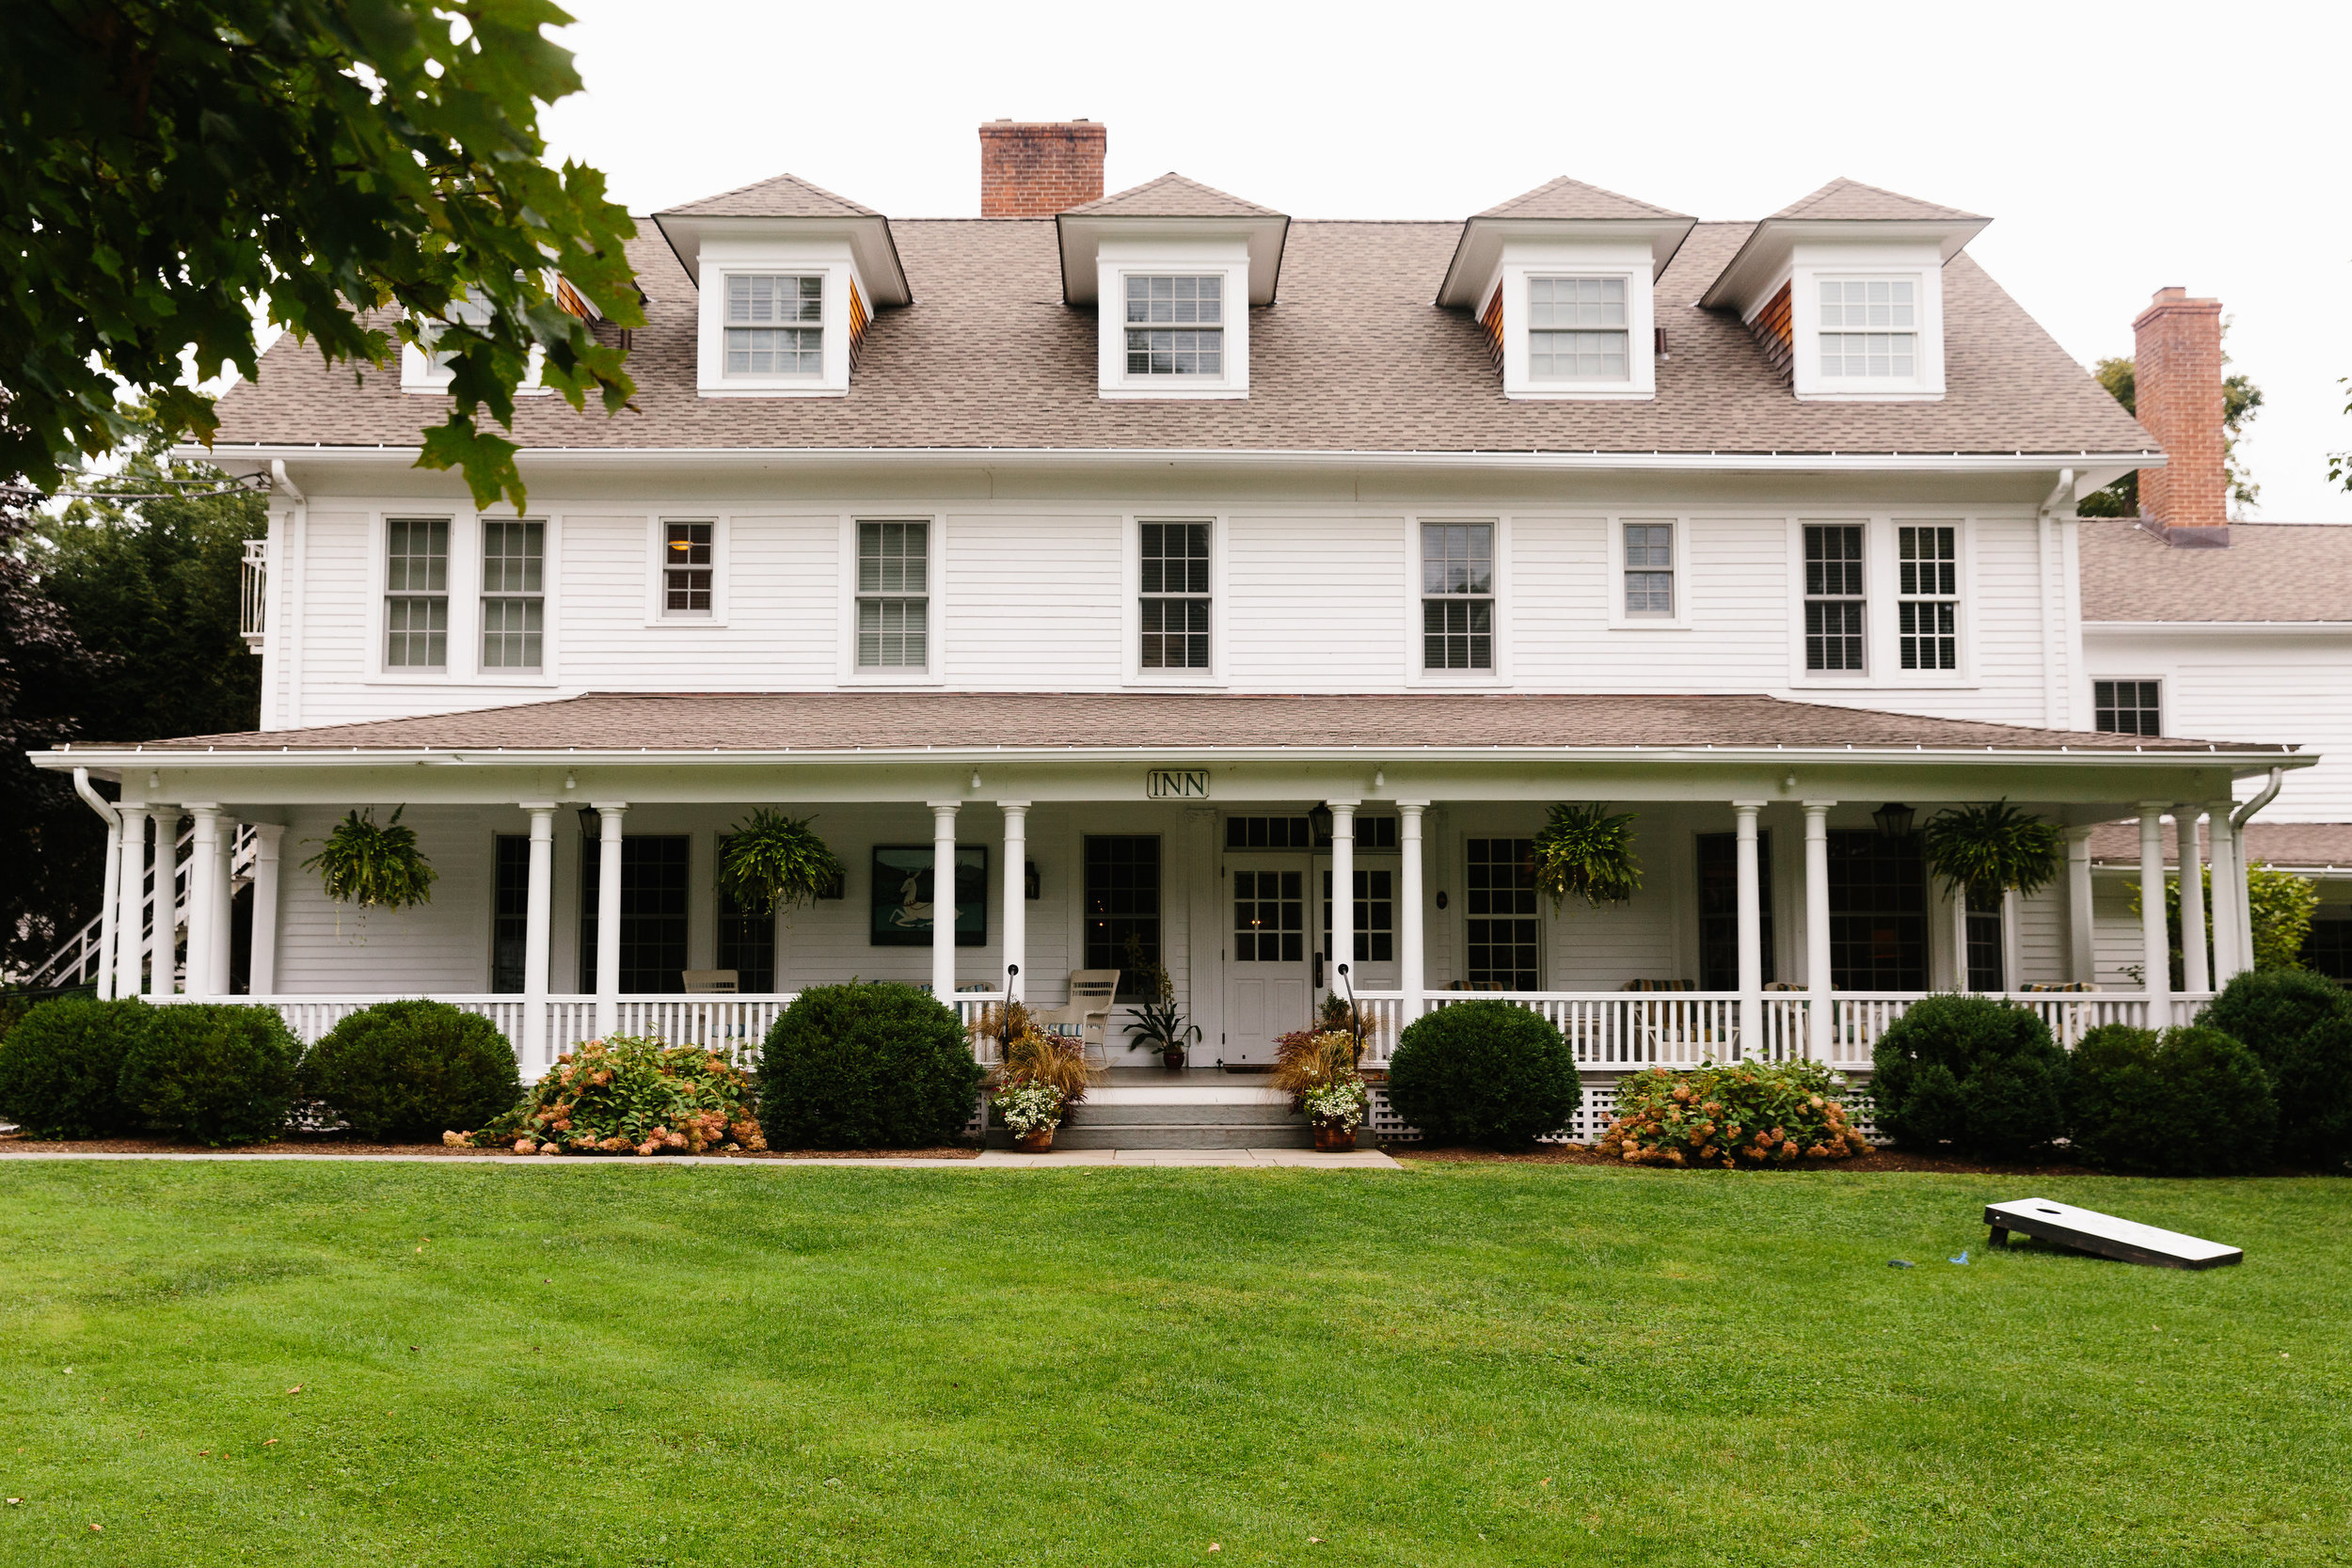 Where to Stay In Litchfield County The White Hart Inn.jpg